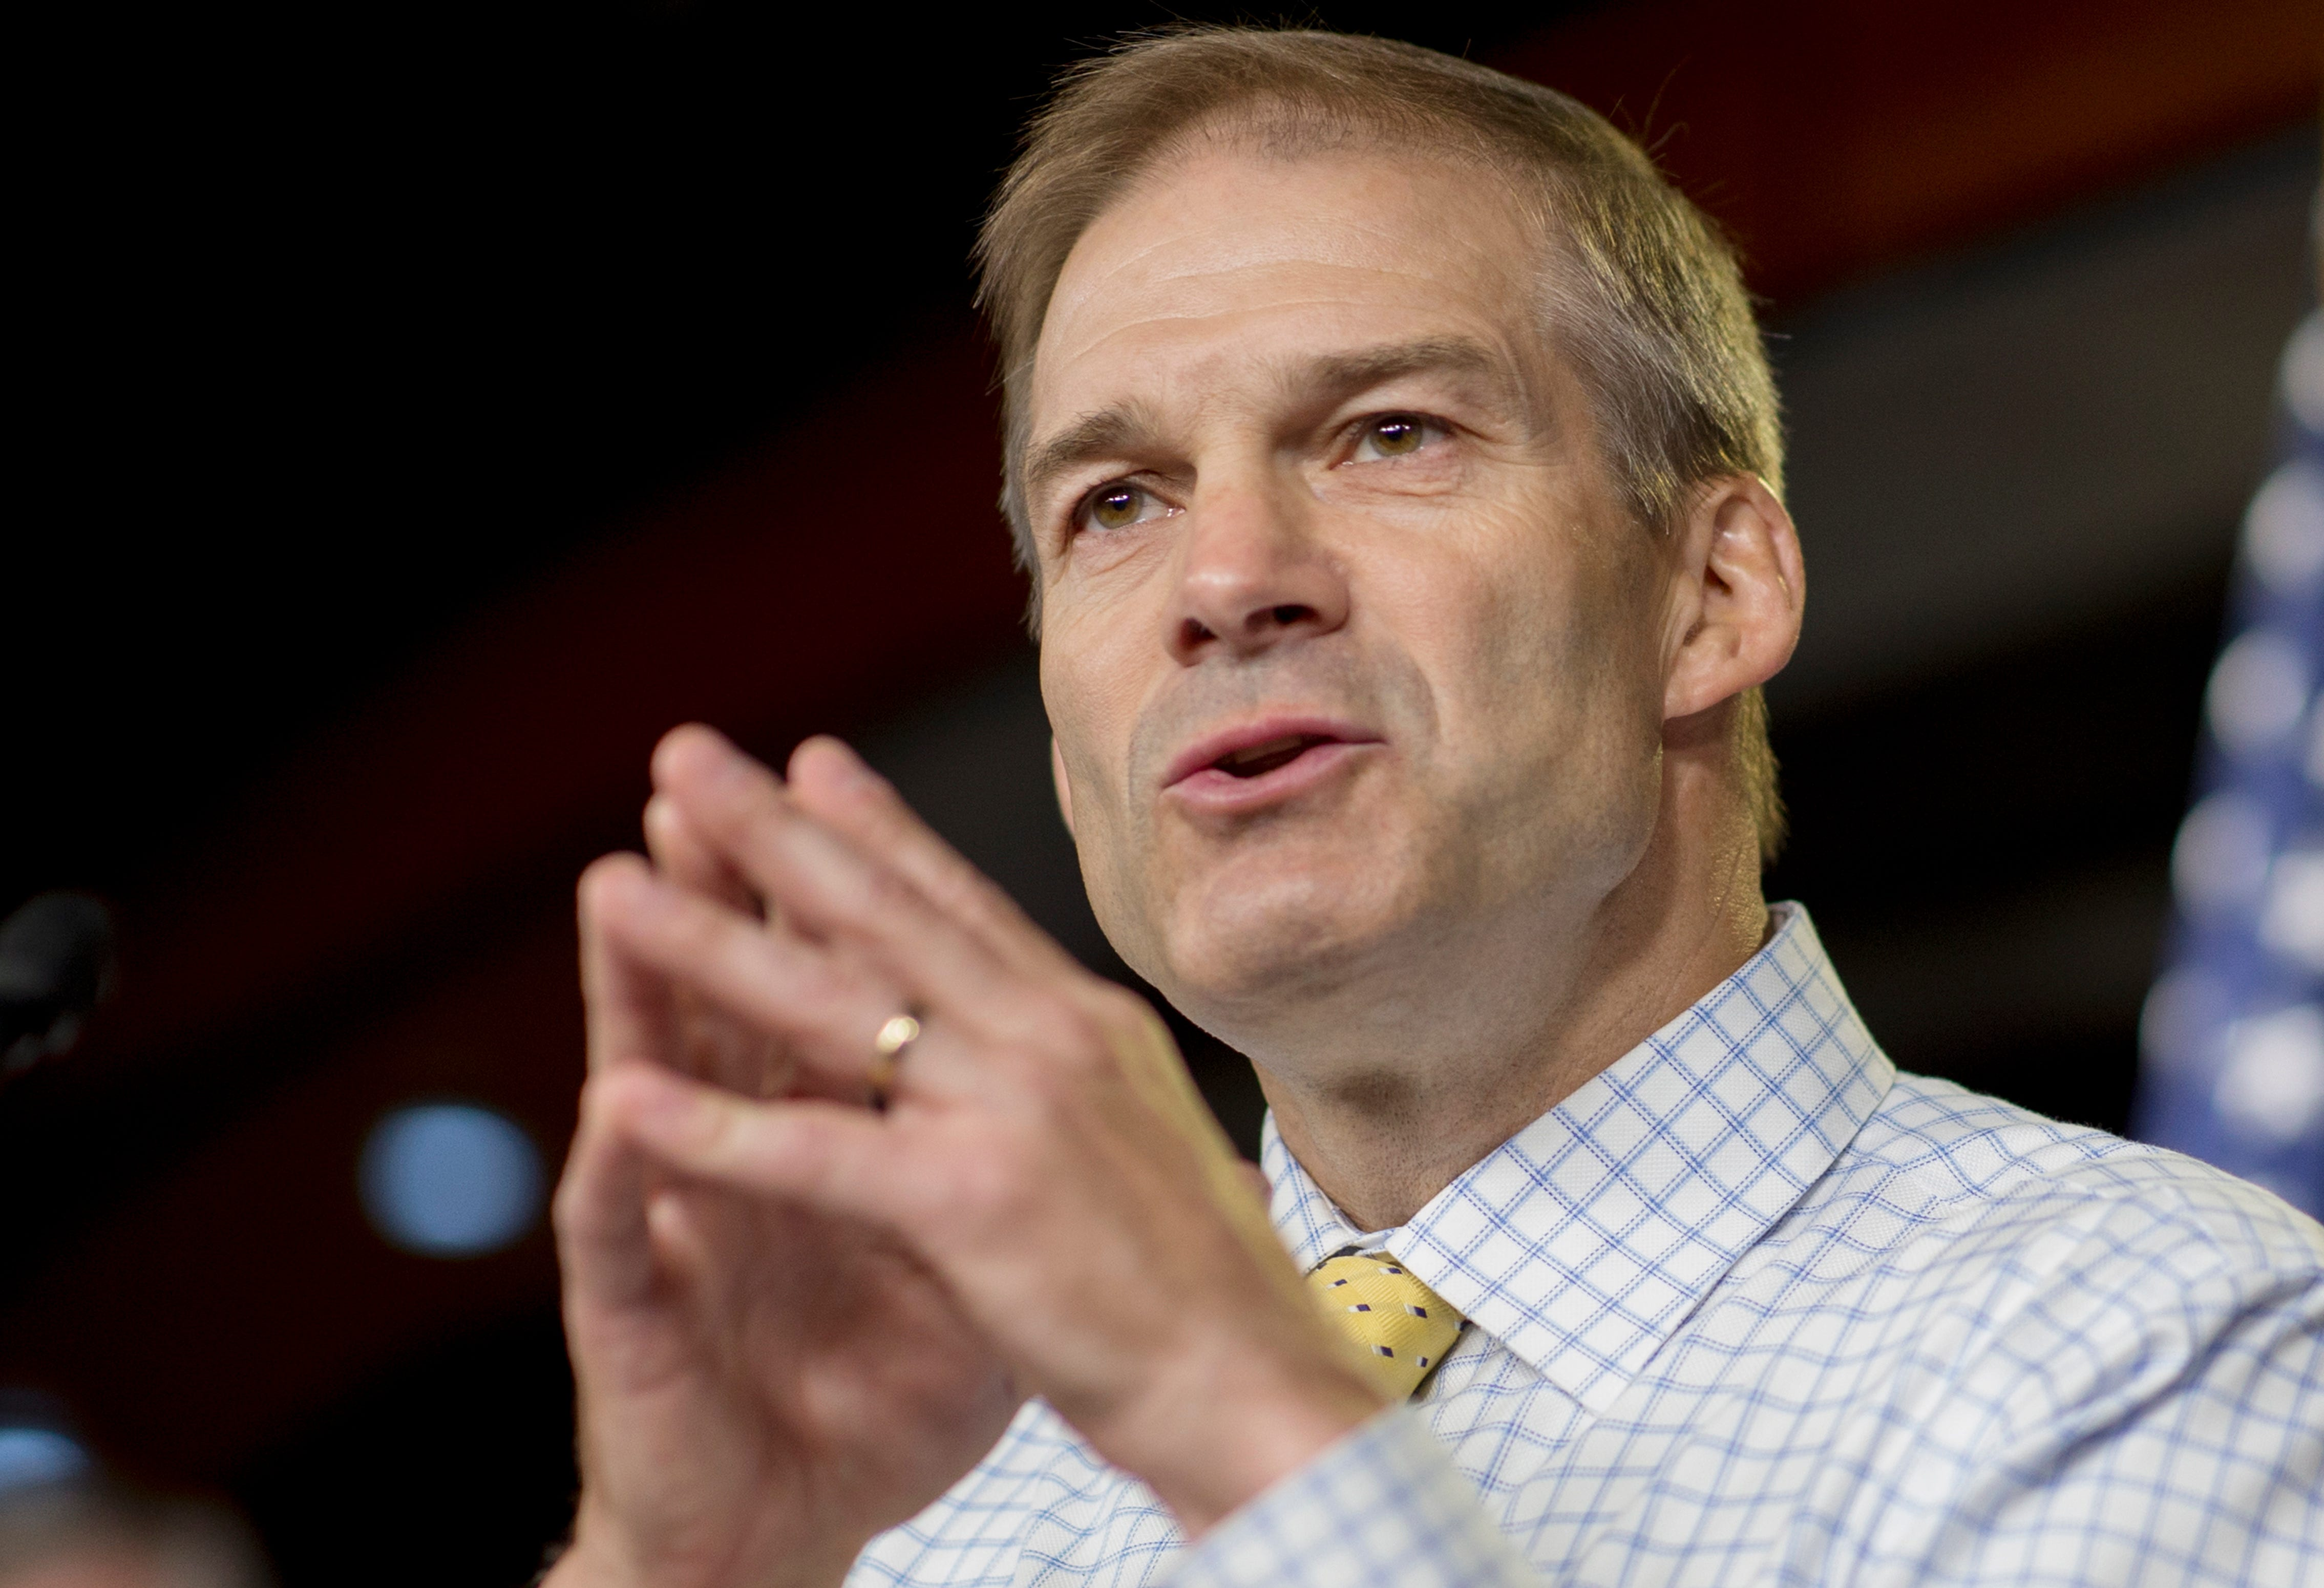 Rep. Jim Jordan, R-Ohio, speaks during a news conference on Capitol Hill on Sept. 6, 2018.